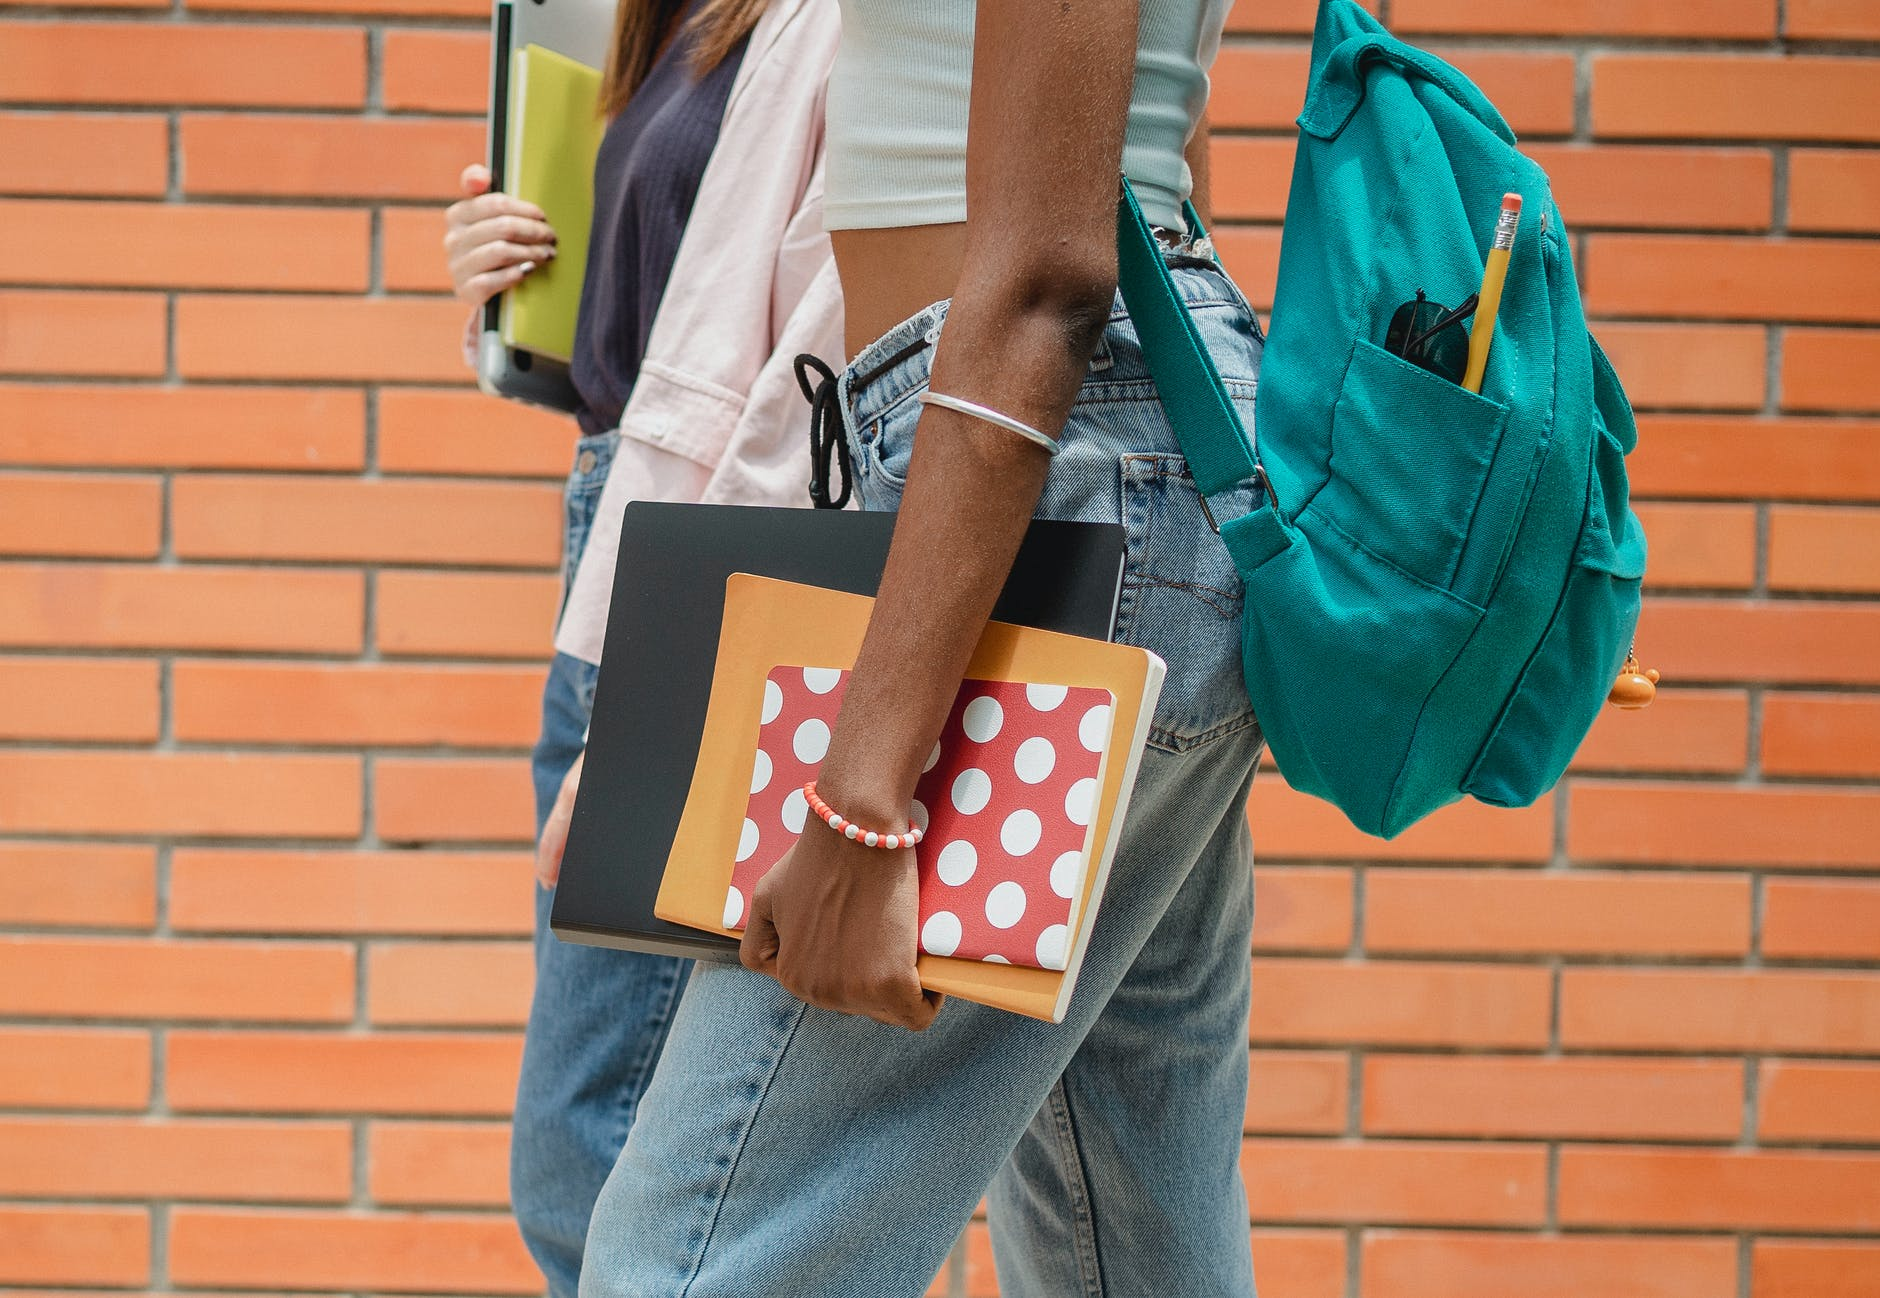 crop diverse multiethnic students with textbooks walking on sidewalk together